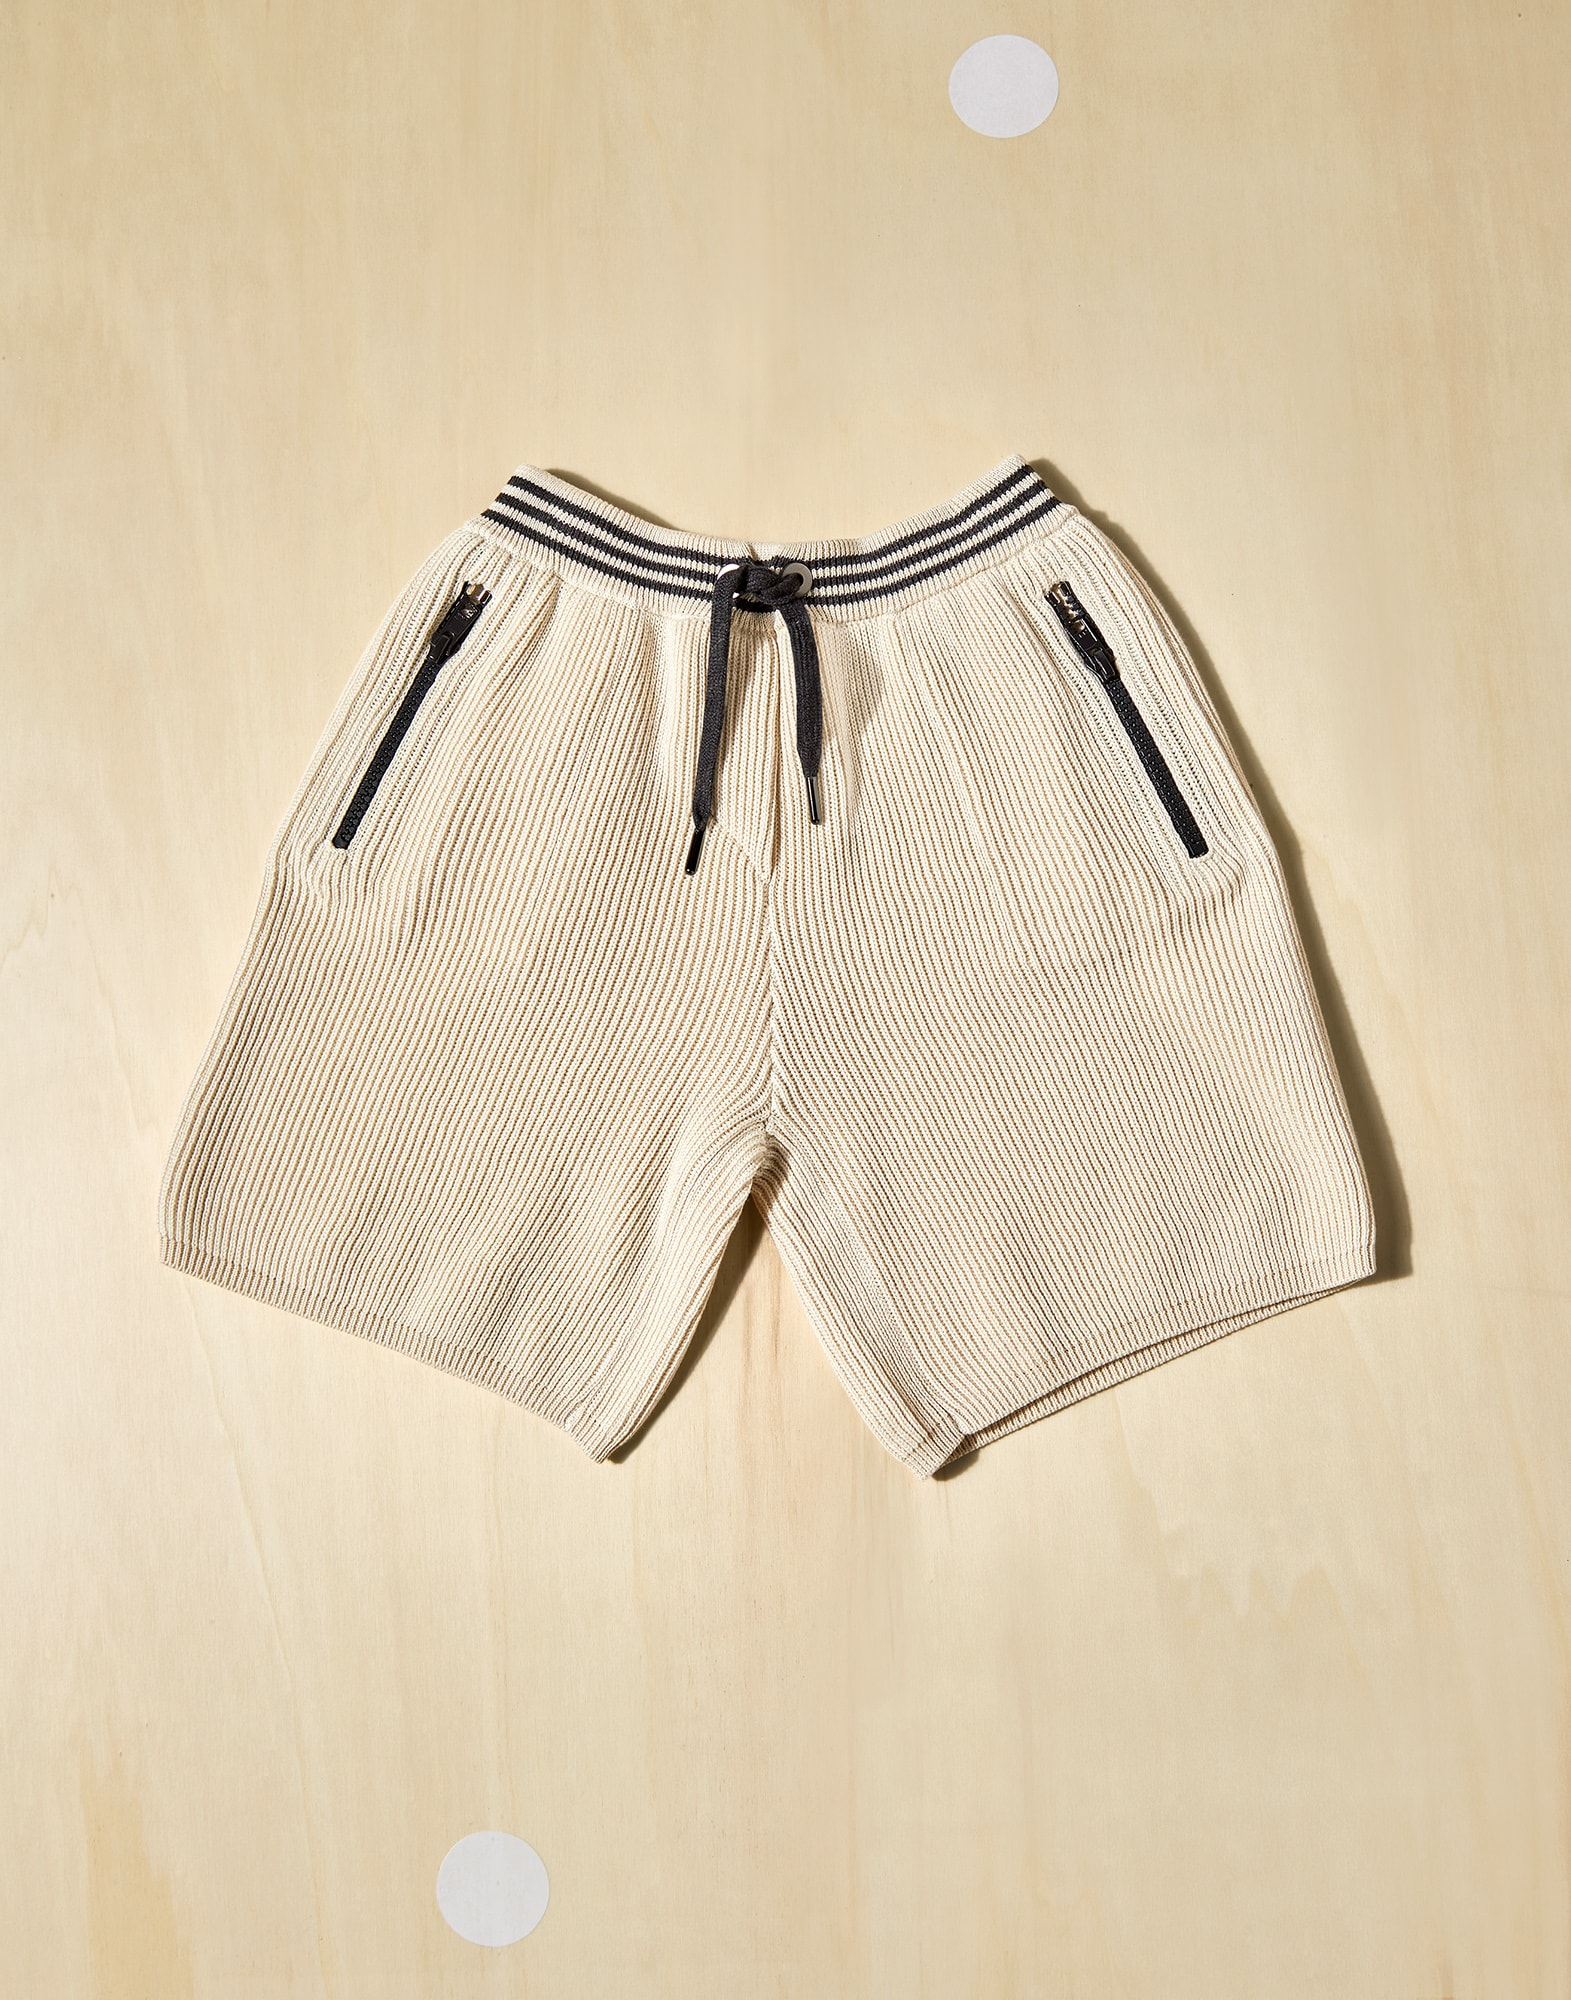 Bermudas y Shorts - Vista frontal